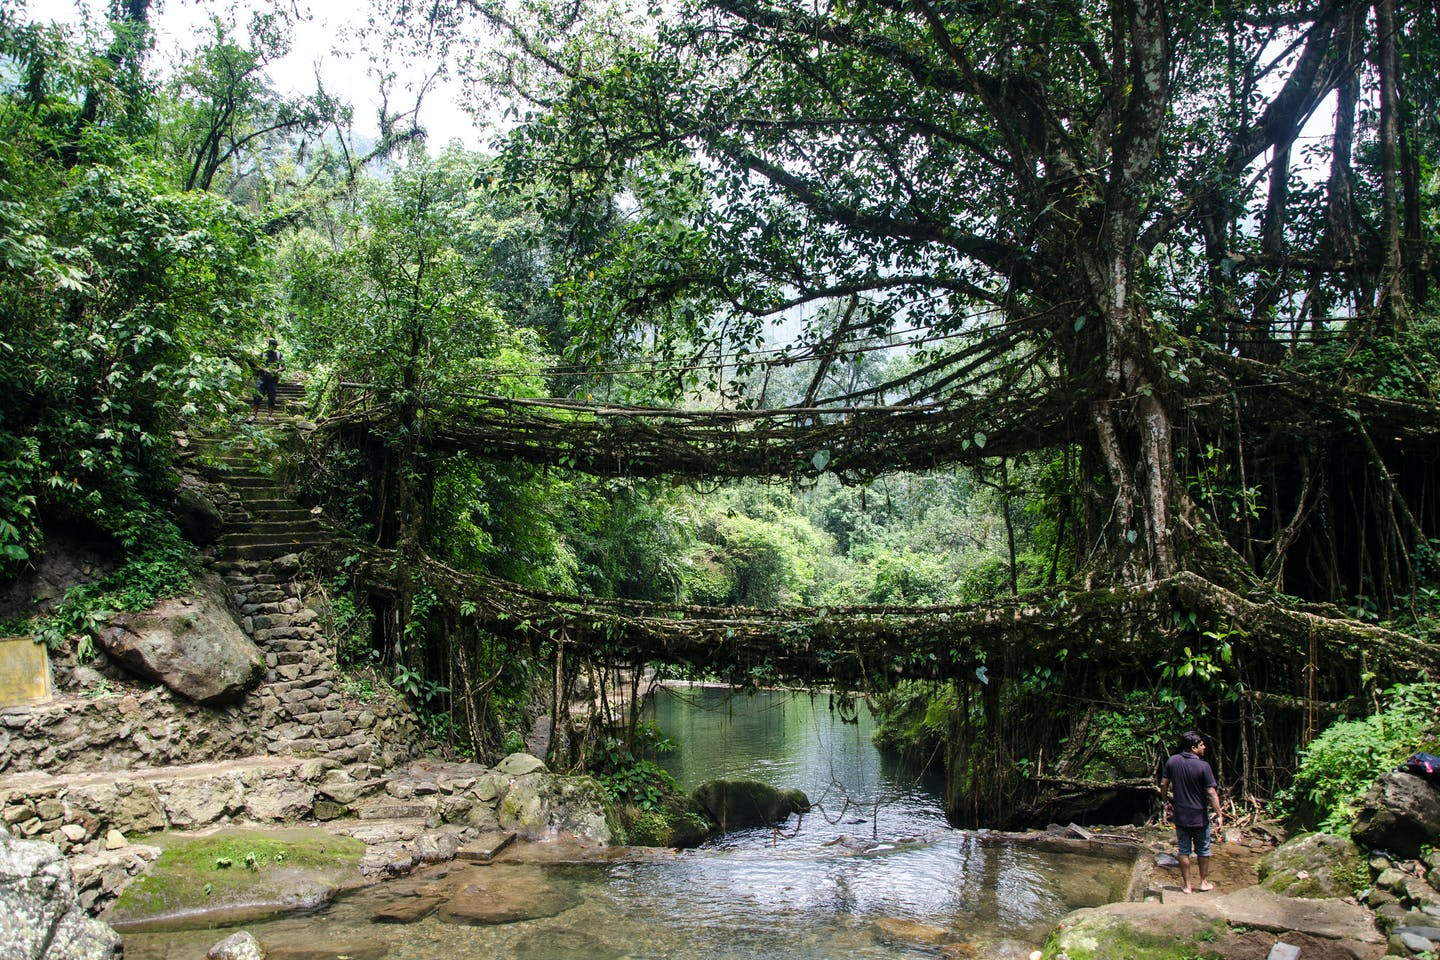 meghalaya root bridge green infrastructure